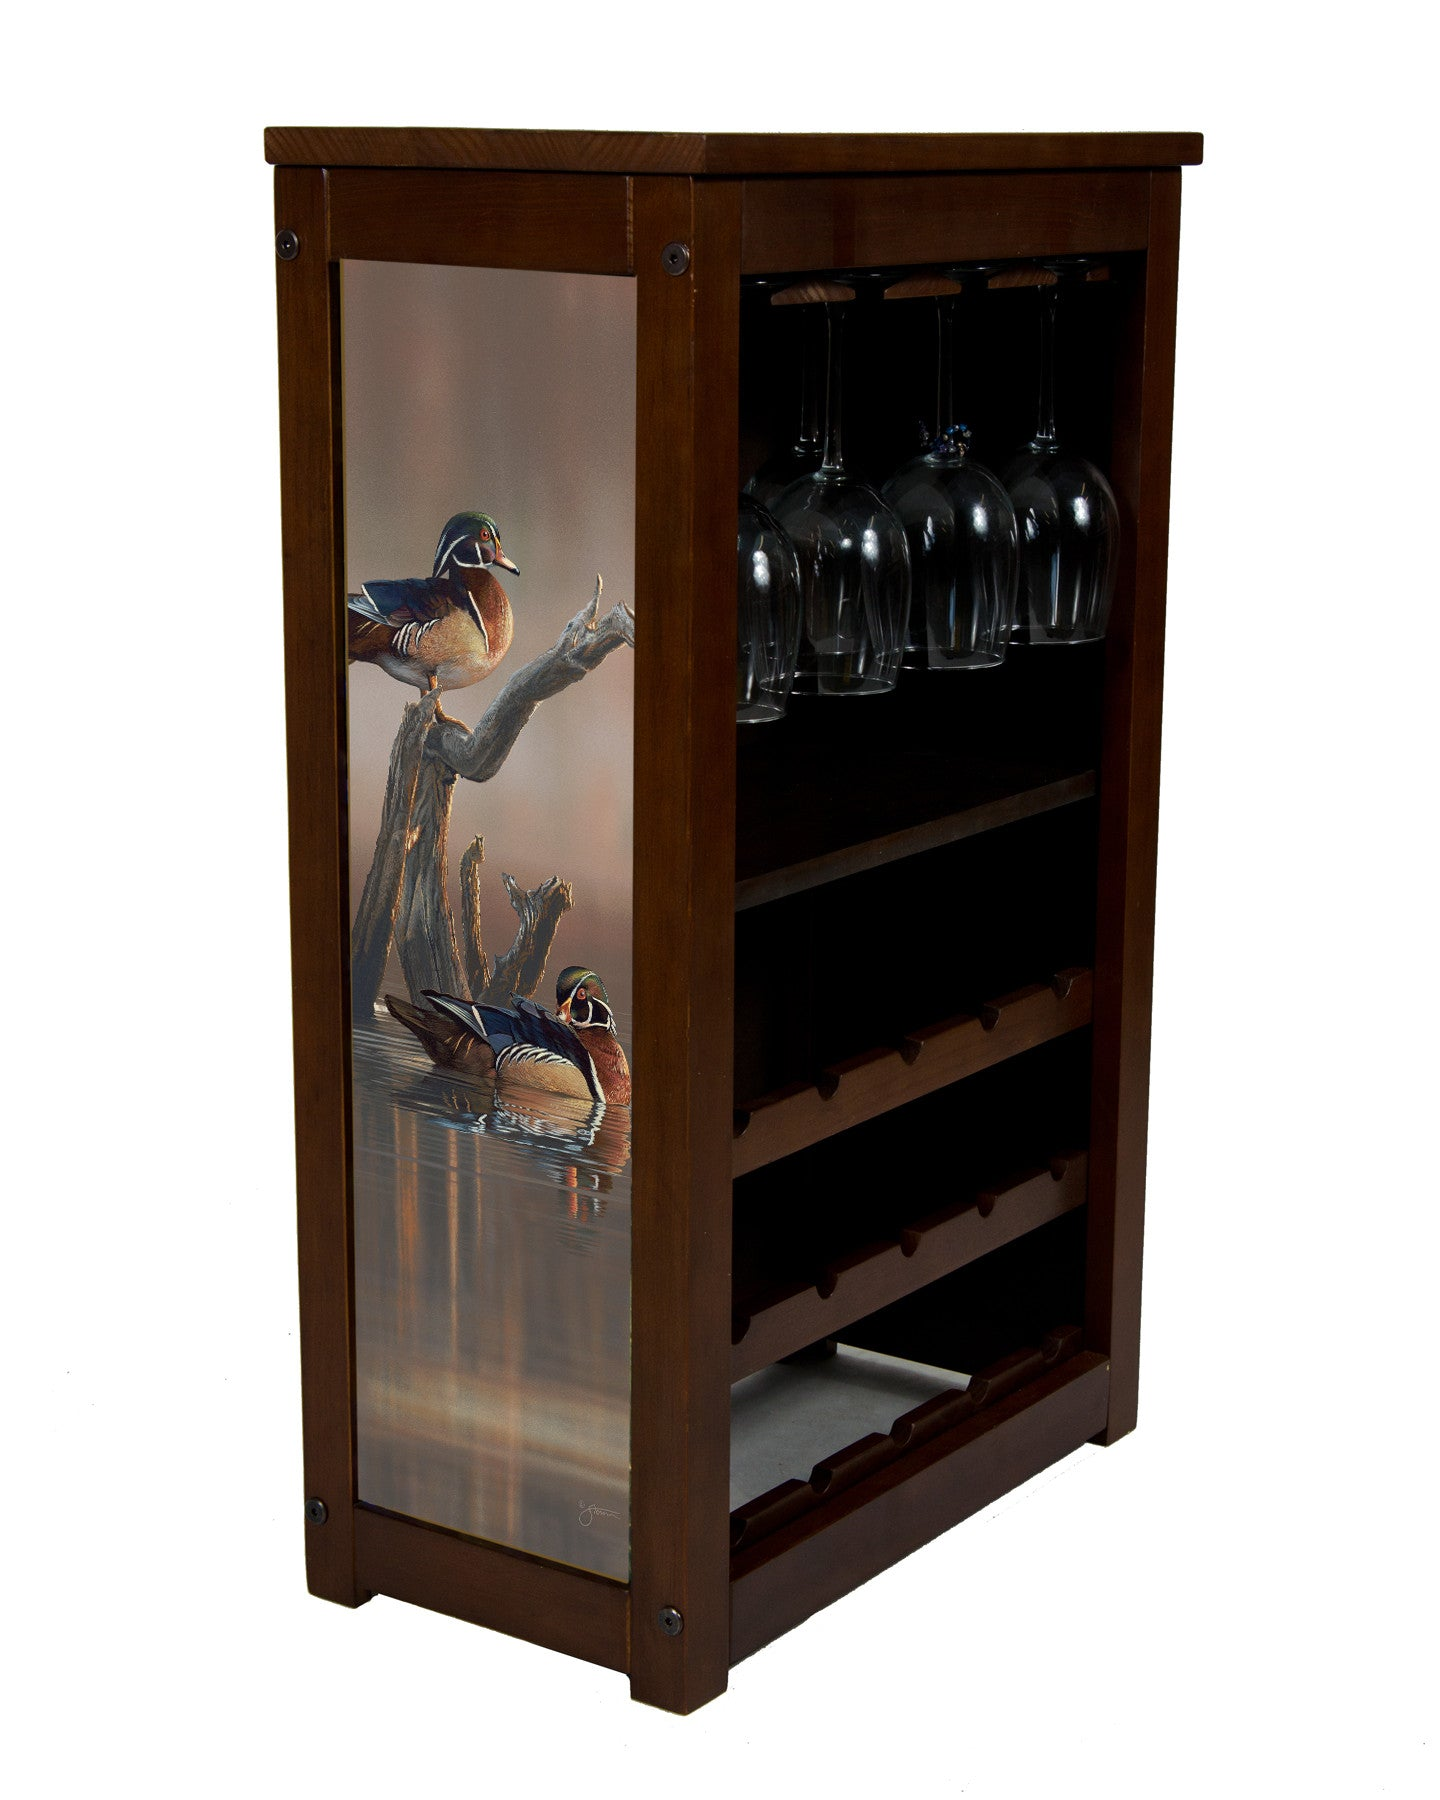 Wood Ducks and Wine Cabinet by Scott Storm